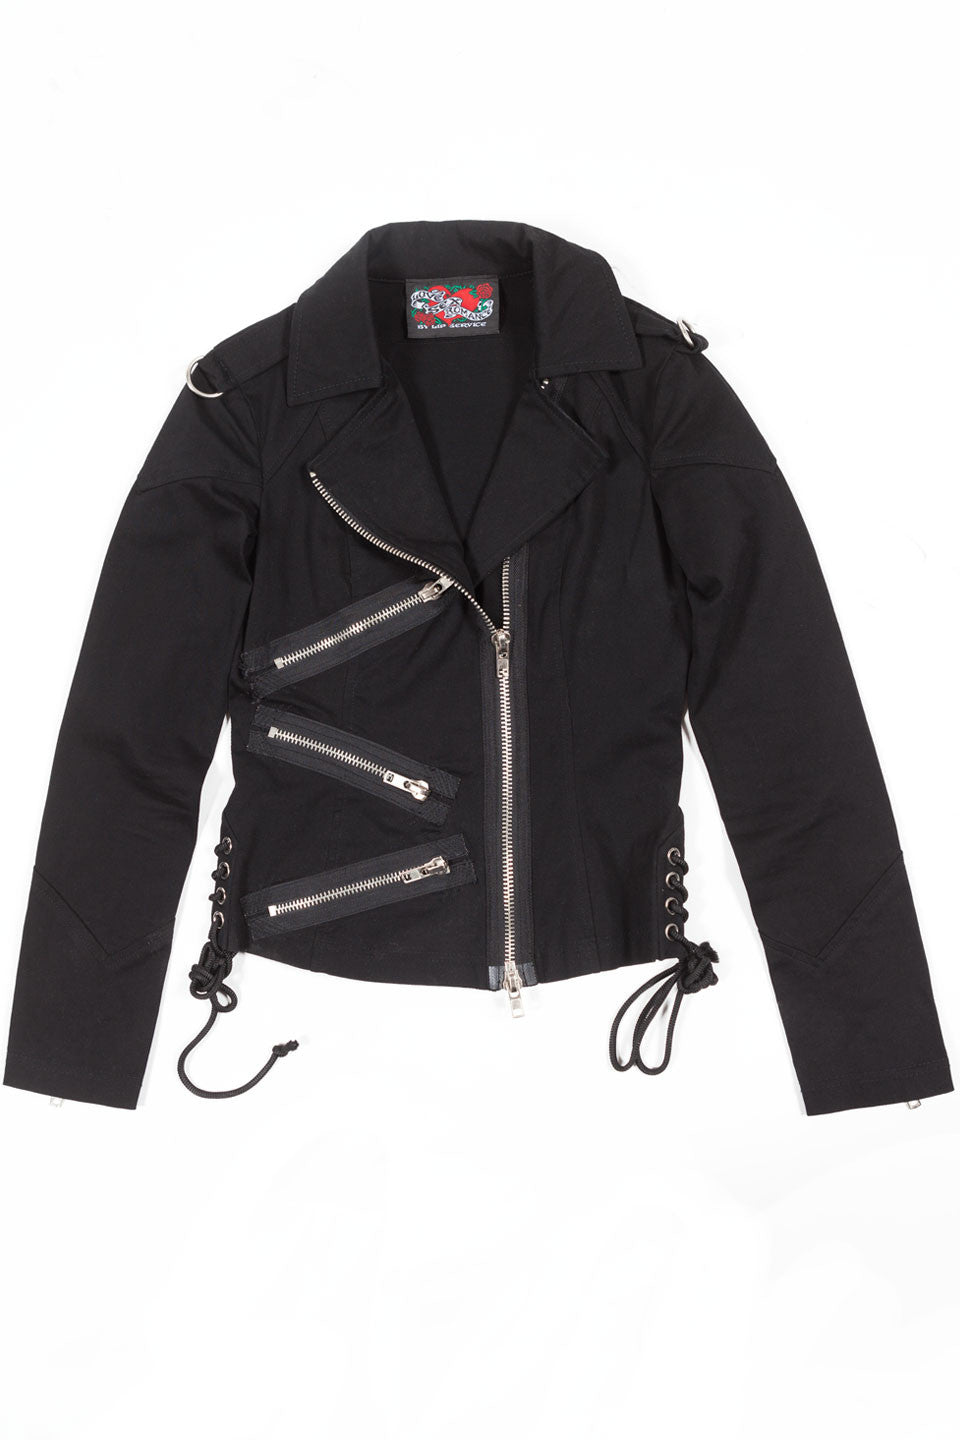 Chained To The Radiator Moto Jacket - Jacket - Lip Service